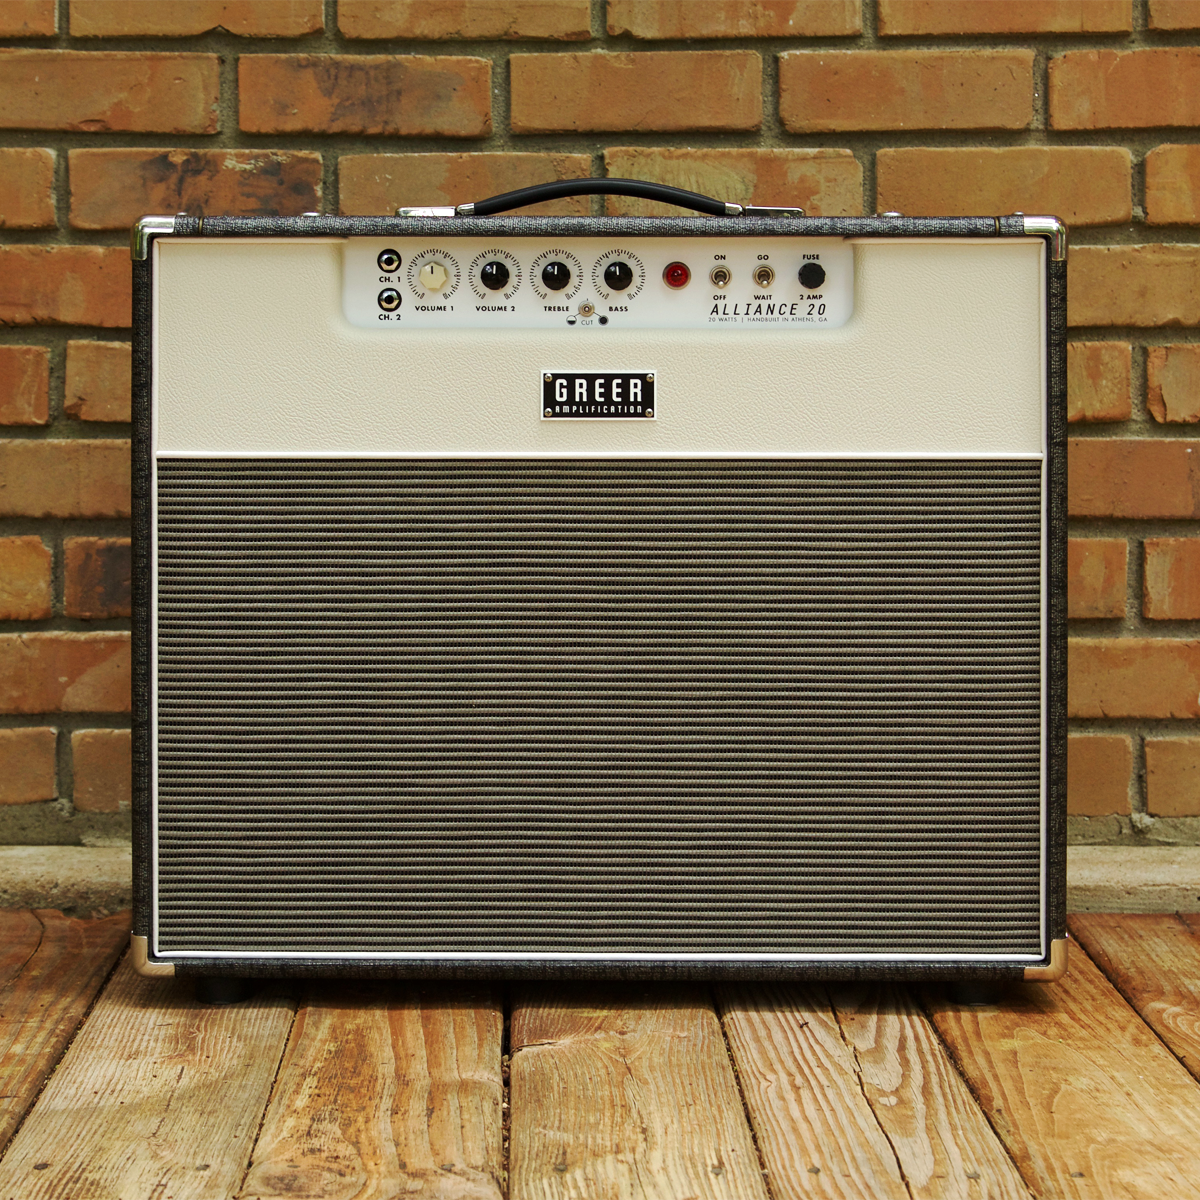 Greer Amps Alliance 20 Combo